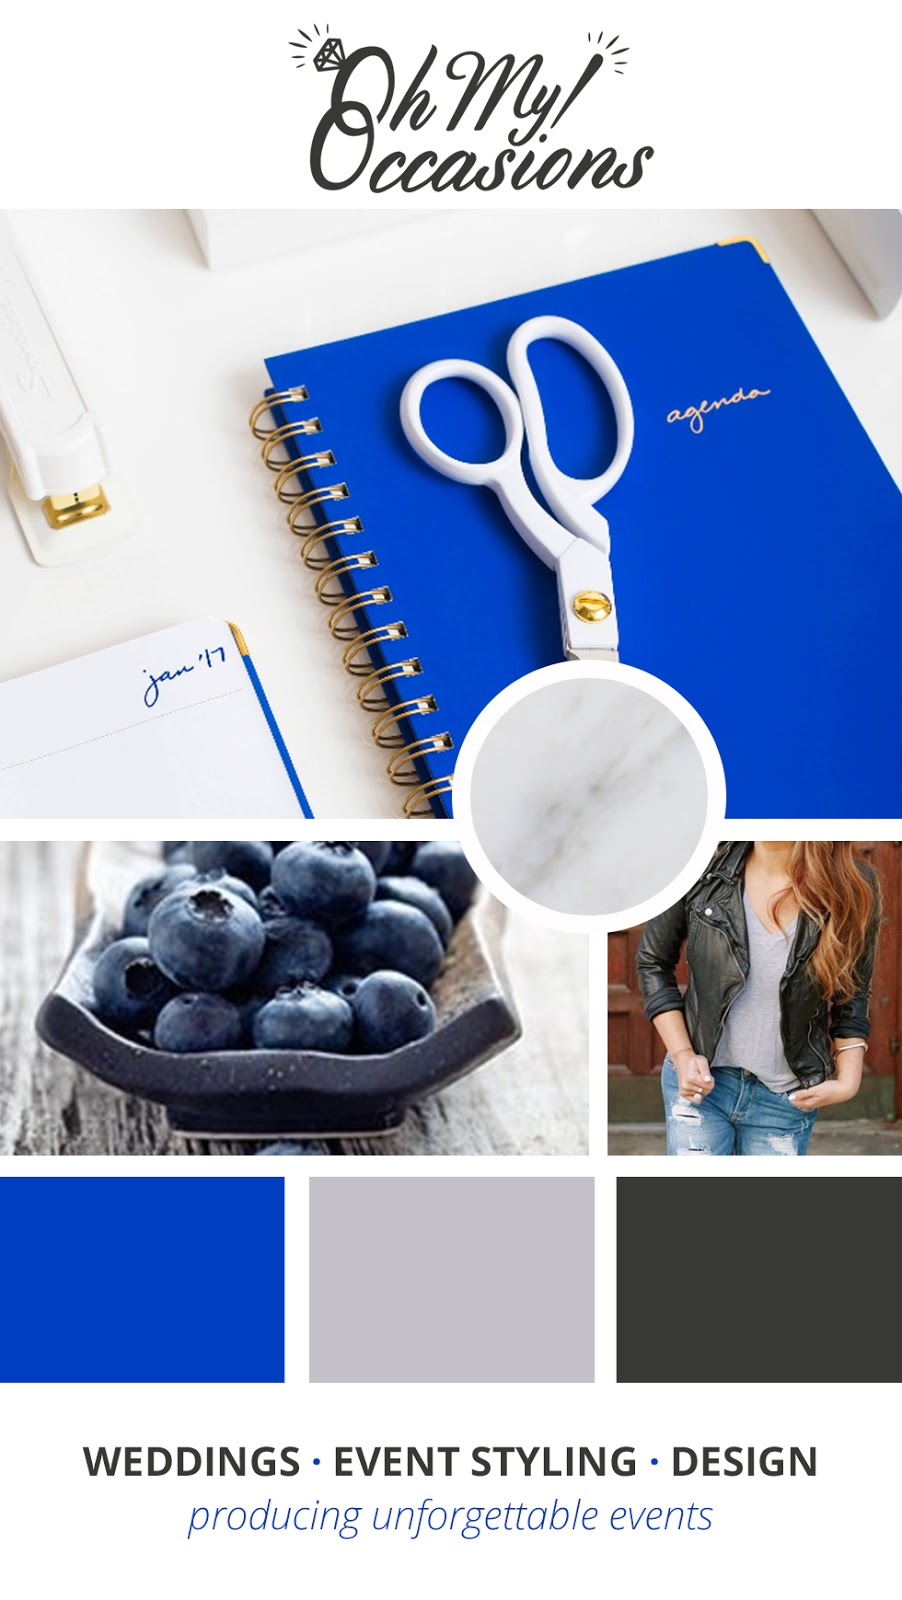 Amber hired me for branding and marketing services - before we recreated her brand image, we worked on creating a mood board